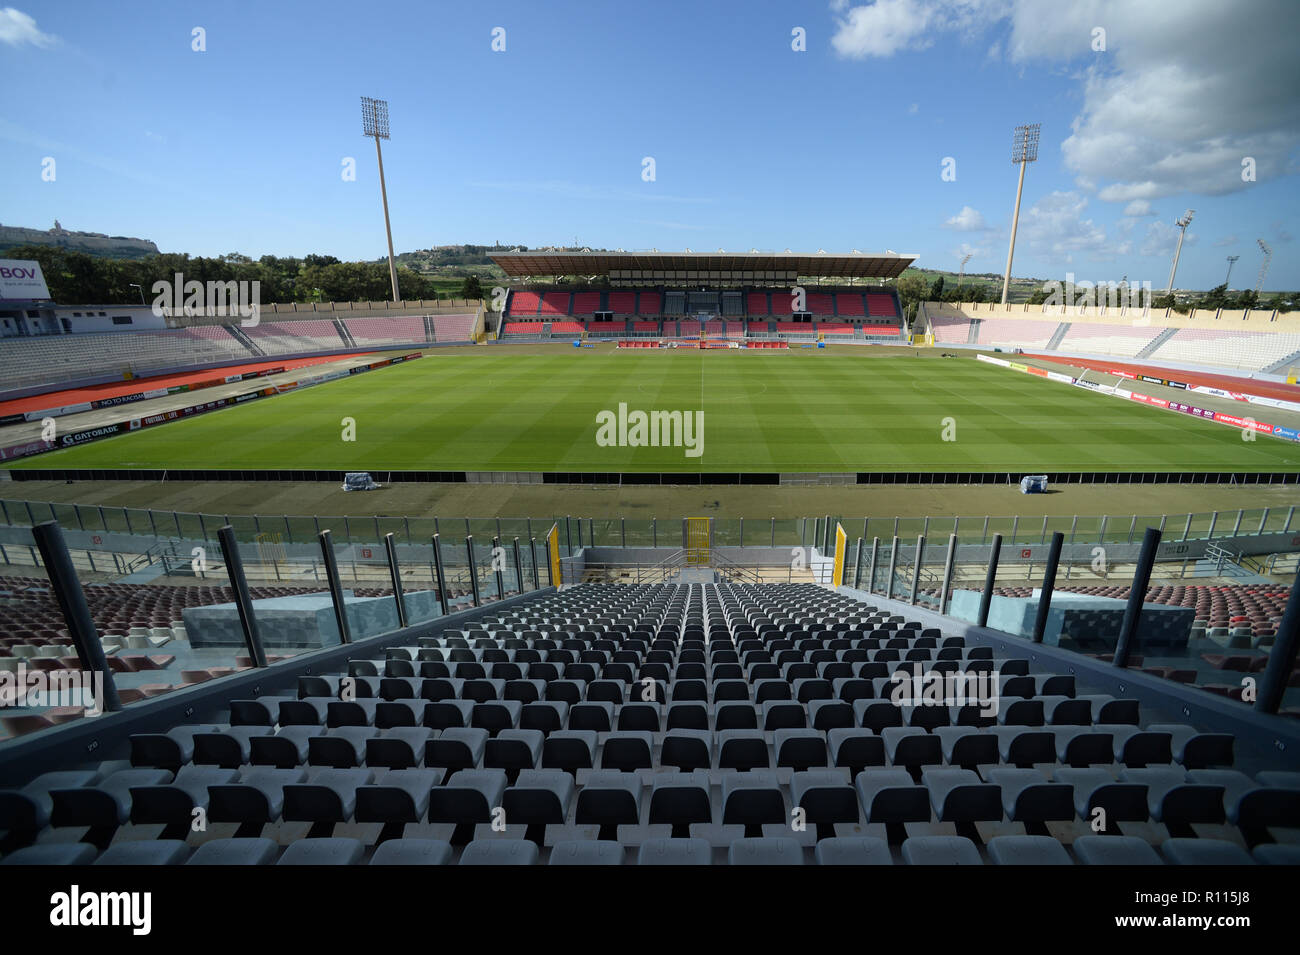 Malta's National football stadium in Ta'Qali, grass pitch used for all International UEFA and FIFa matches for the national soccer team - Stock Image